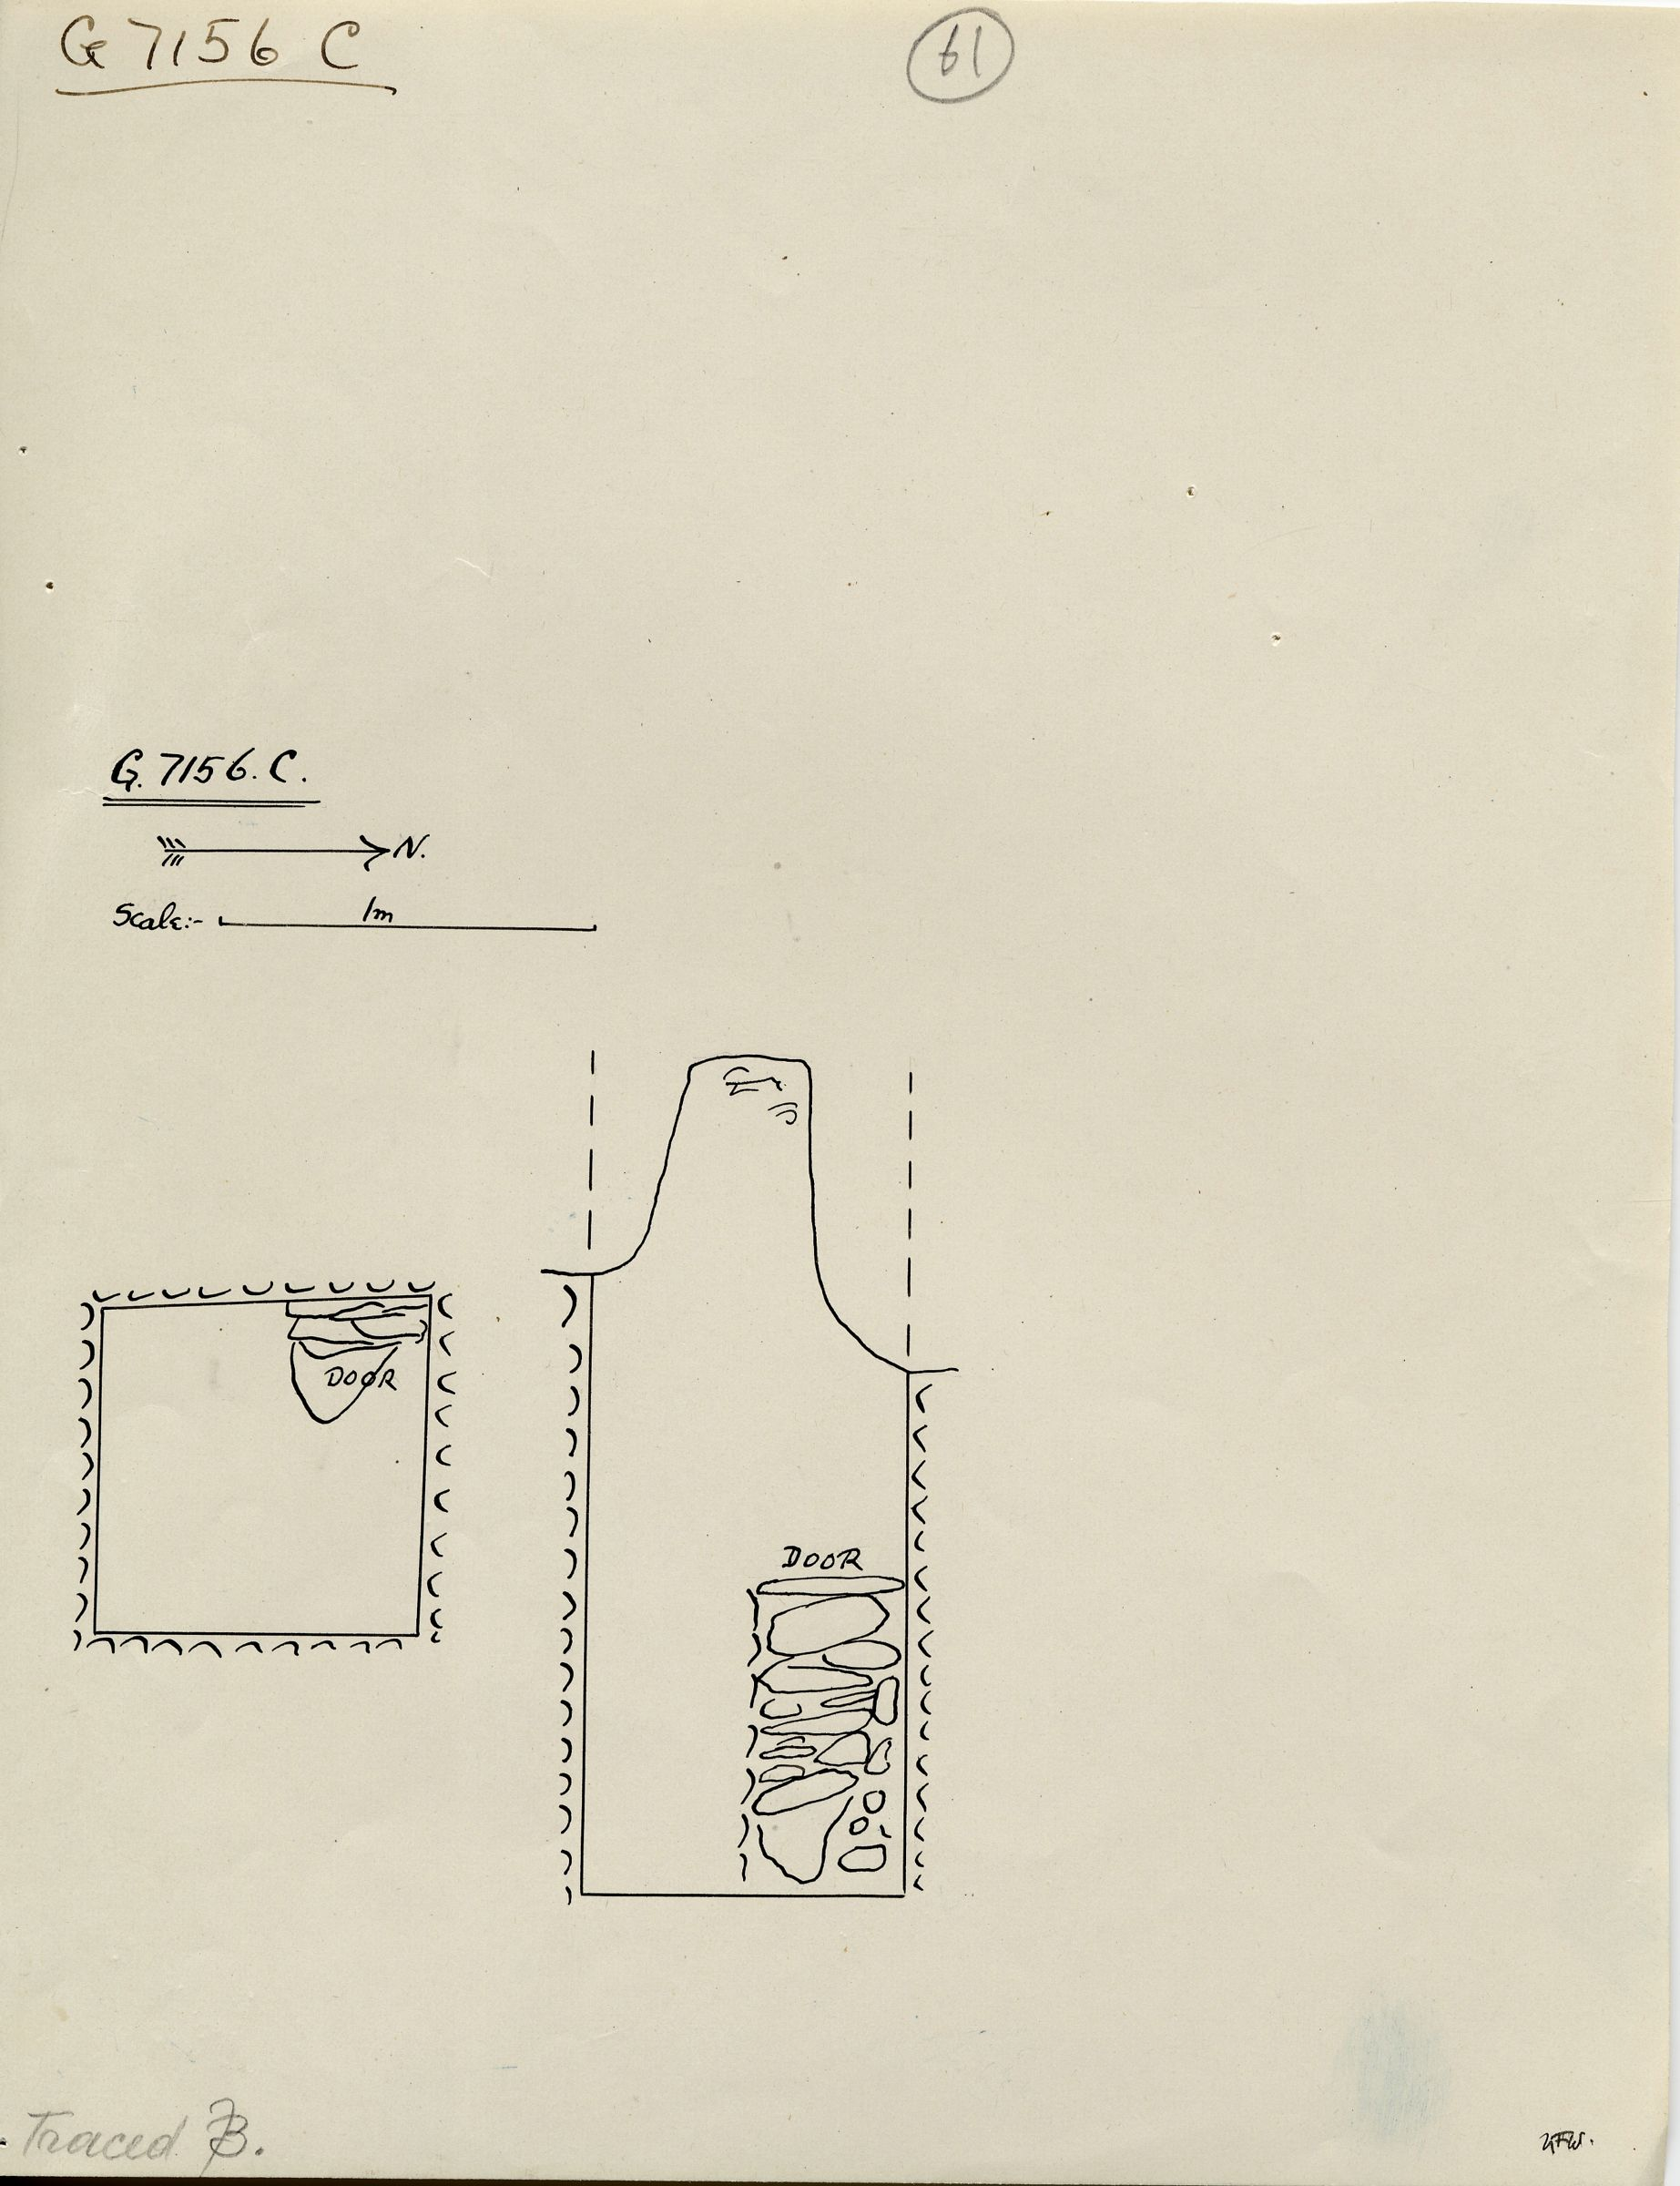 Maps and plans: G 7156, Shaft C